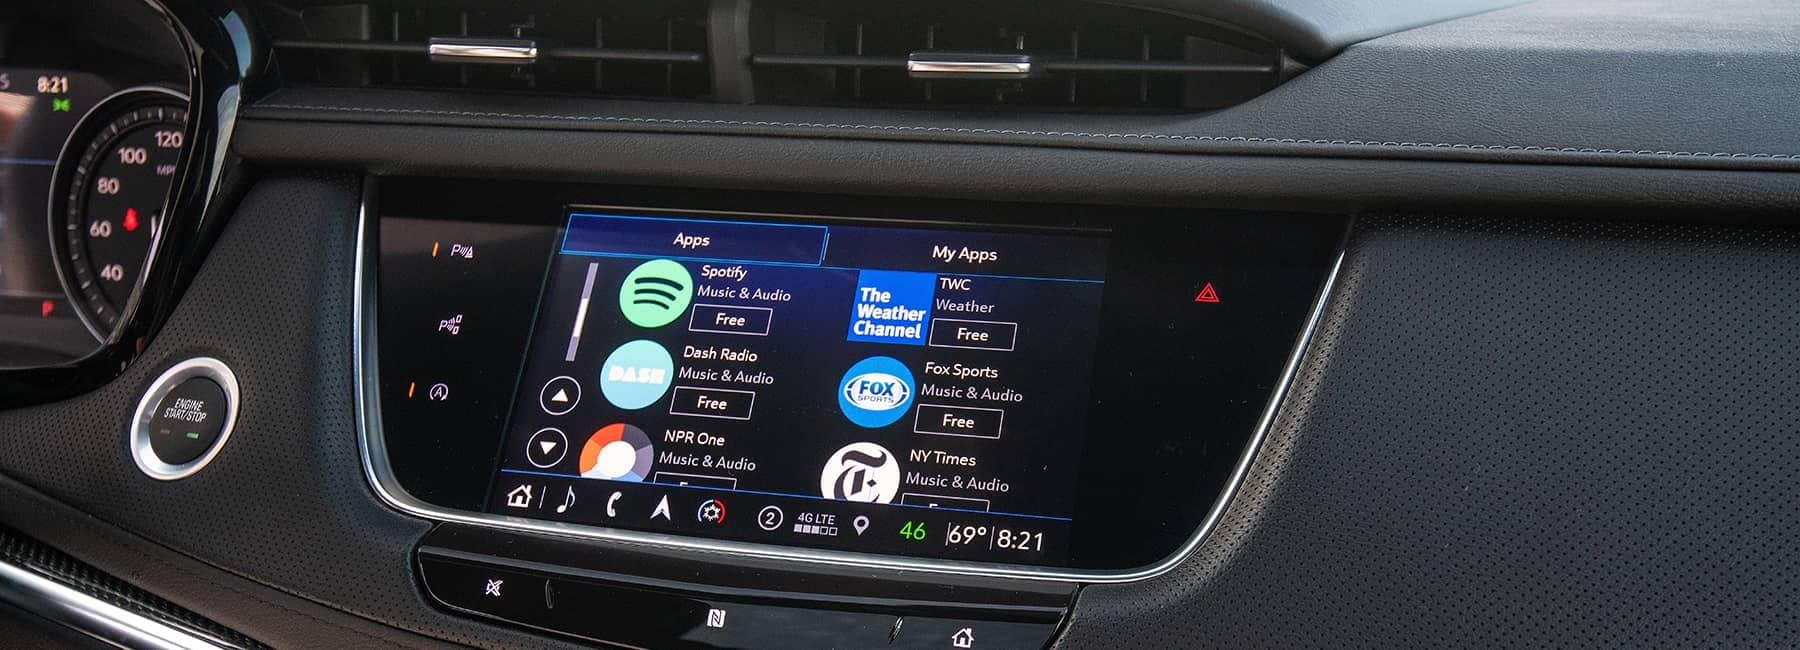 Cadillac dashboard apps